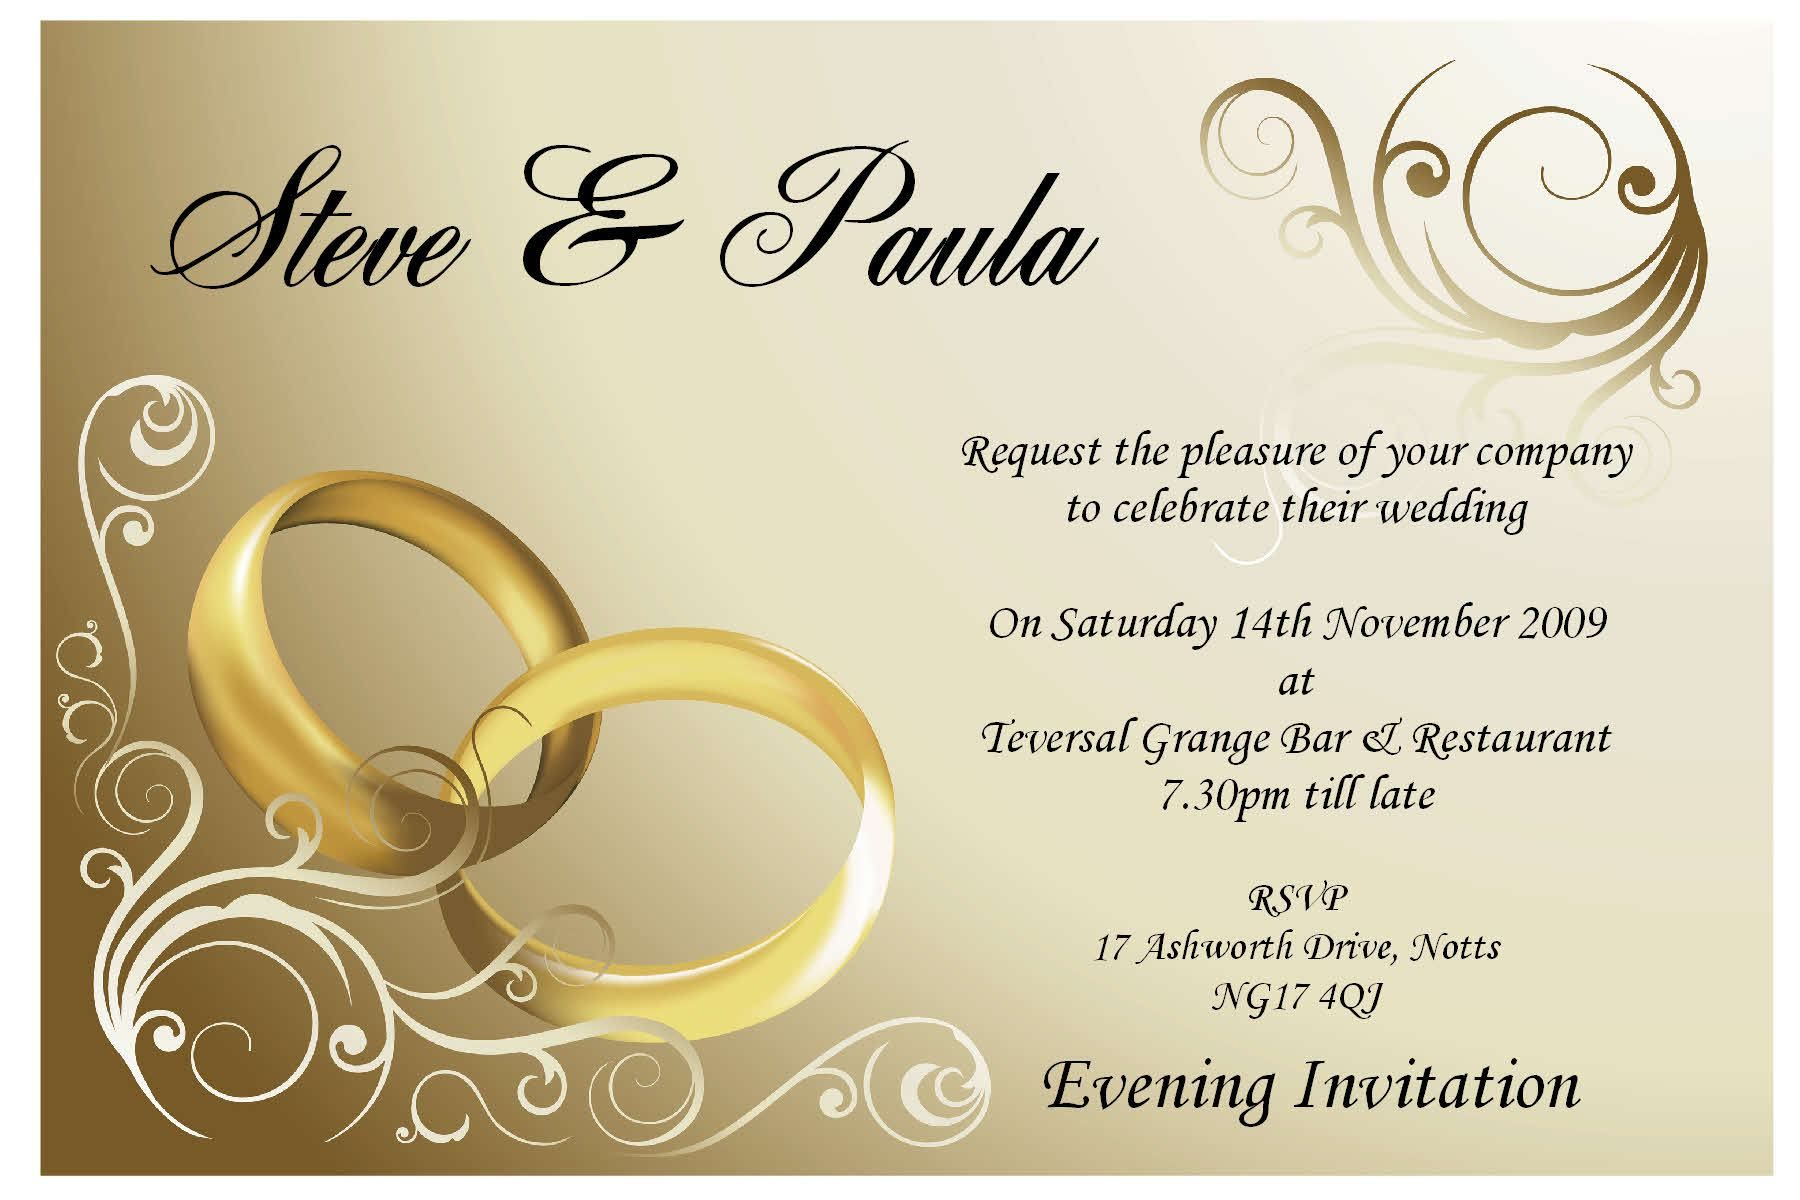 Invitation templates nz inspirationalnew 18th wedding invitation wedding invitation maker 4847299b0ddcbe05975f396a9db45f56 online wedding invitation makerhtml invitation templates nz inspirationalnew 18th stopboris